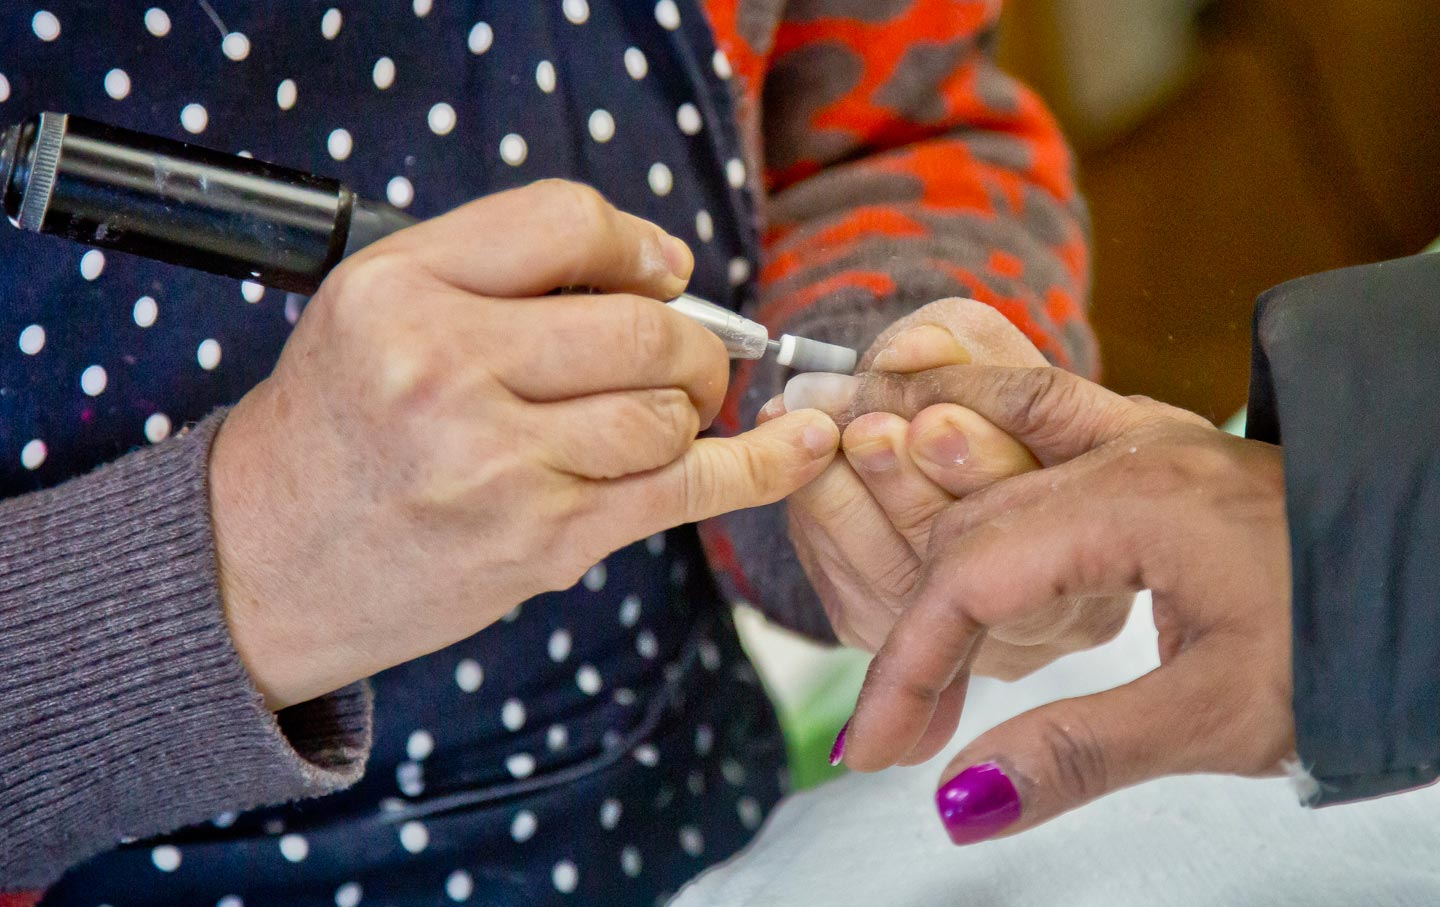 New York\'s Nail Salons Are Still Toxic | The Nation